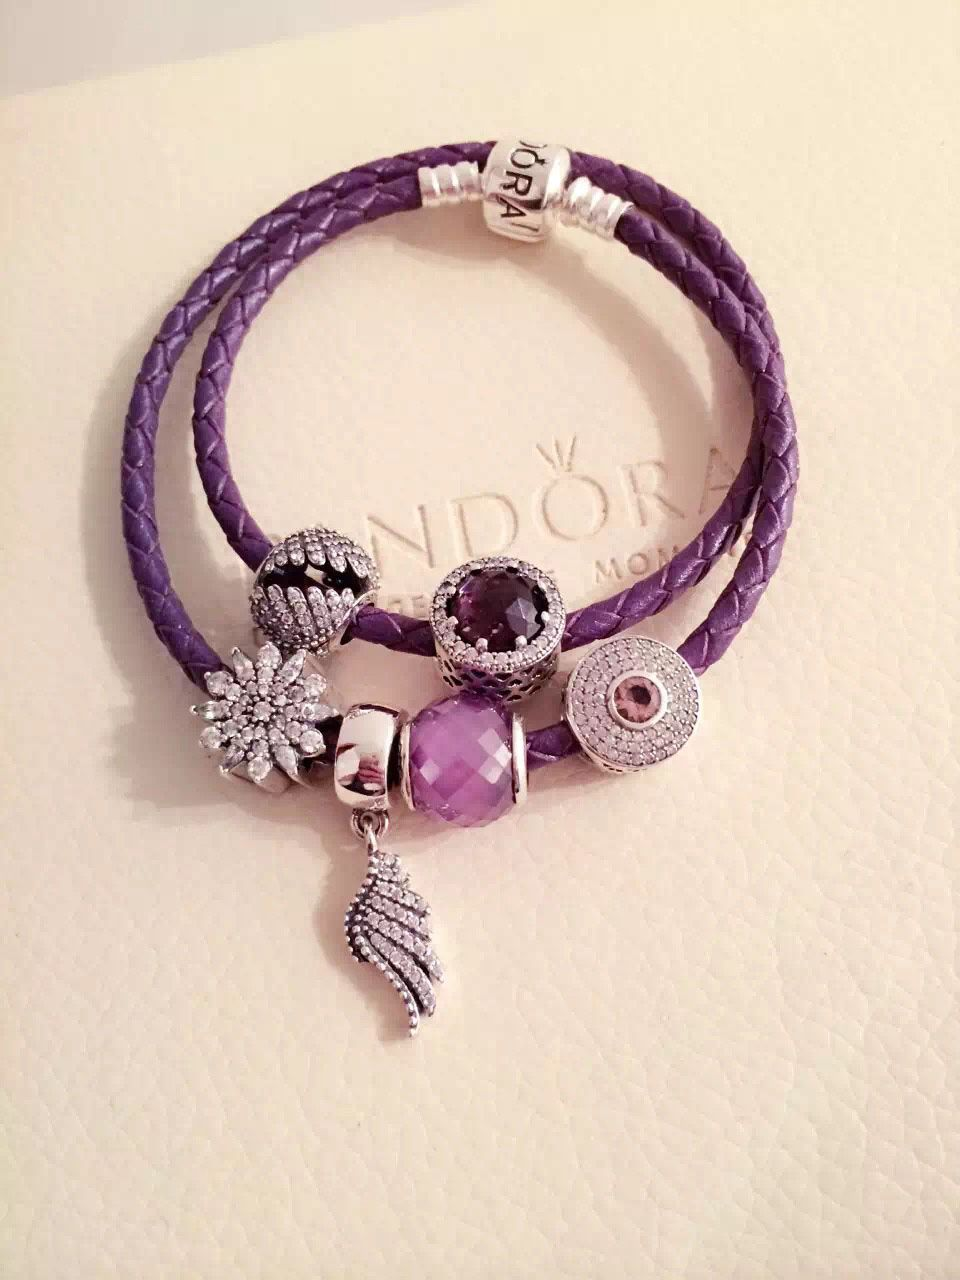 $179 Pandora Leather Charm Bracelet Purple Hot Sale!